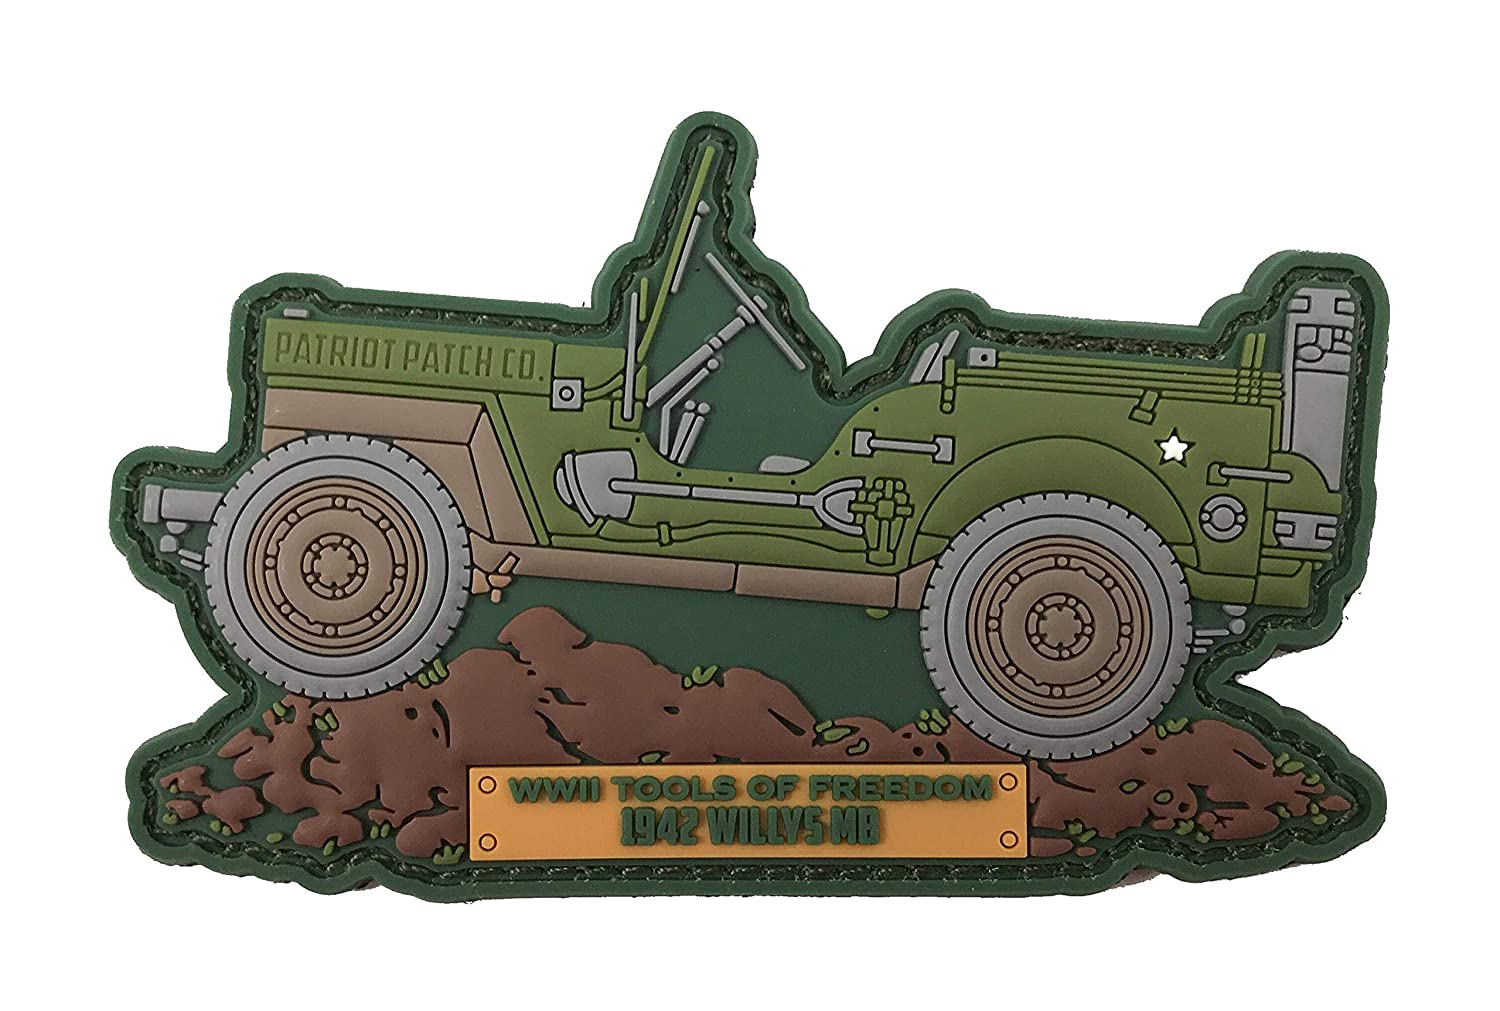 Patriot Patch Co - WWII 歴史的な車両パッチ  Willys MB B07KNDTQ7M